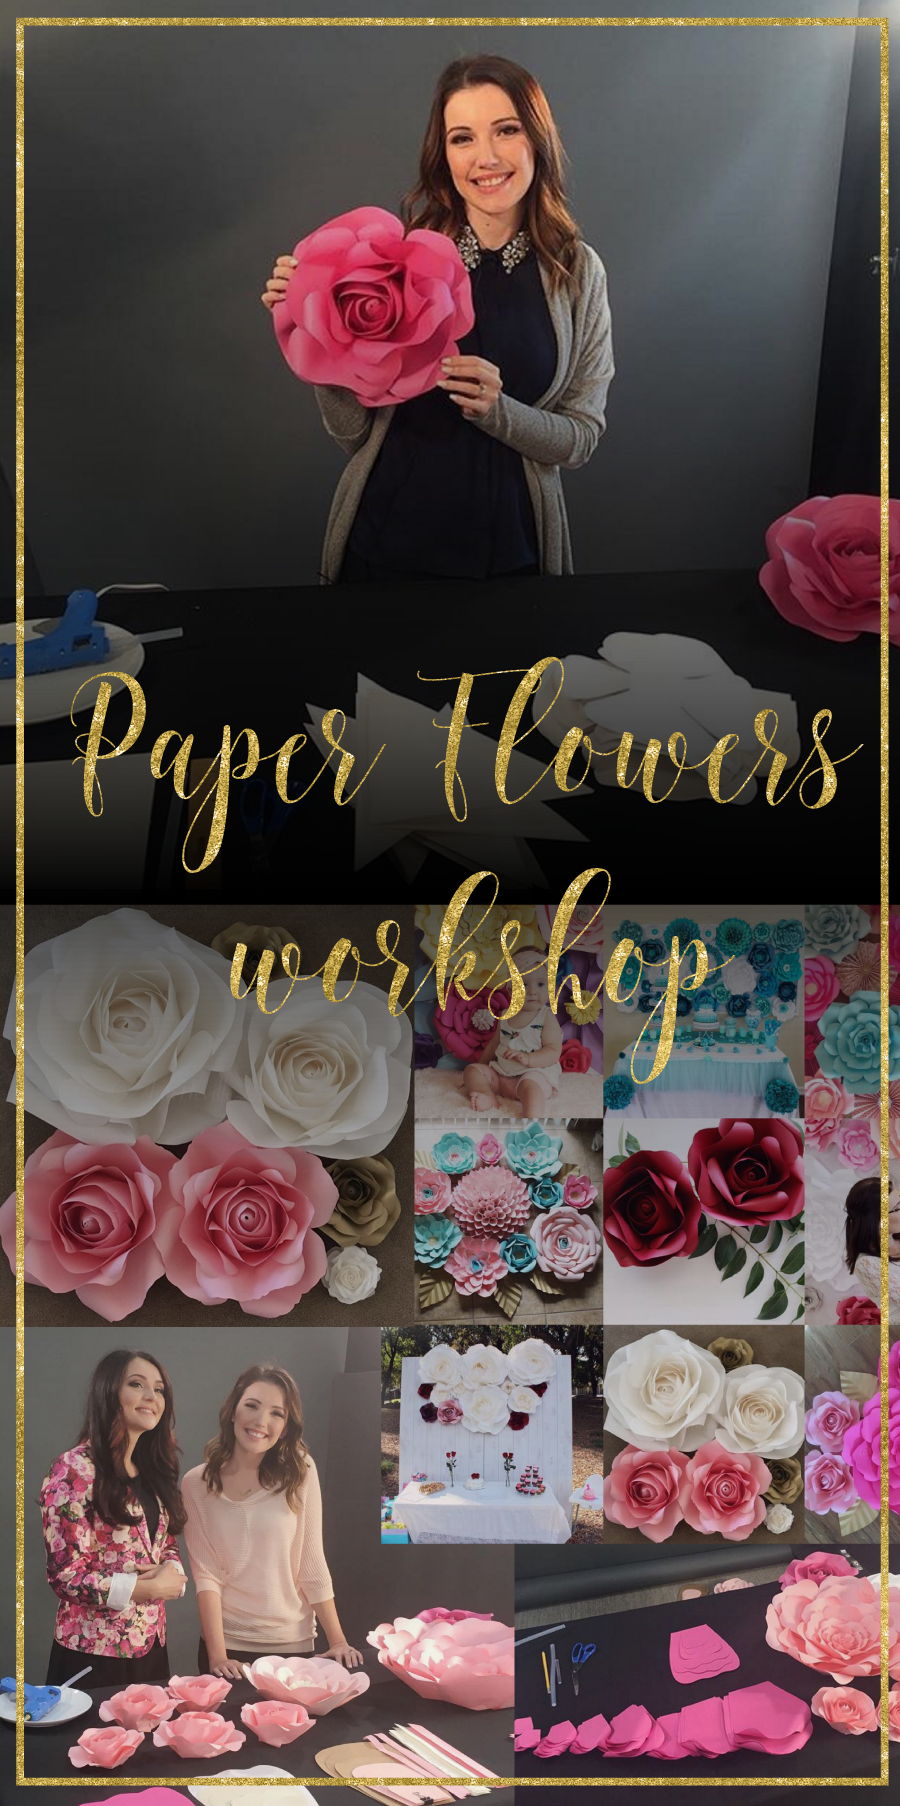 Paper flowers online workshop you will learn to make a variety of paper flowers online workshop you will learn to make a variety of paper flowers downloadable templates and a materials list provided mightylinksfo